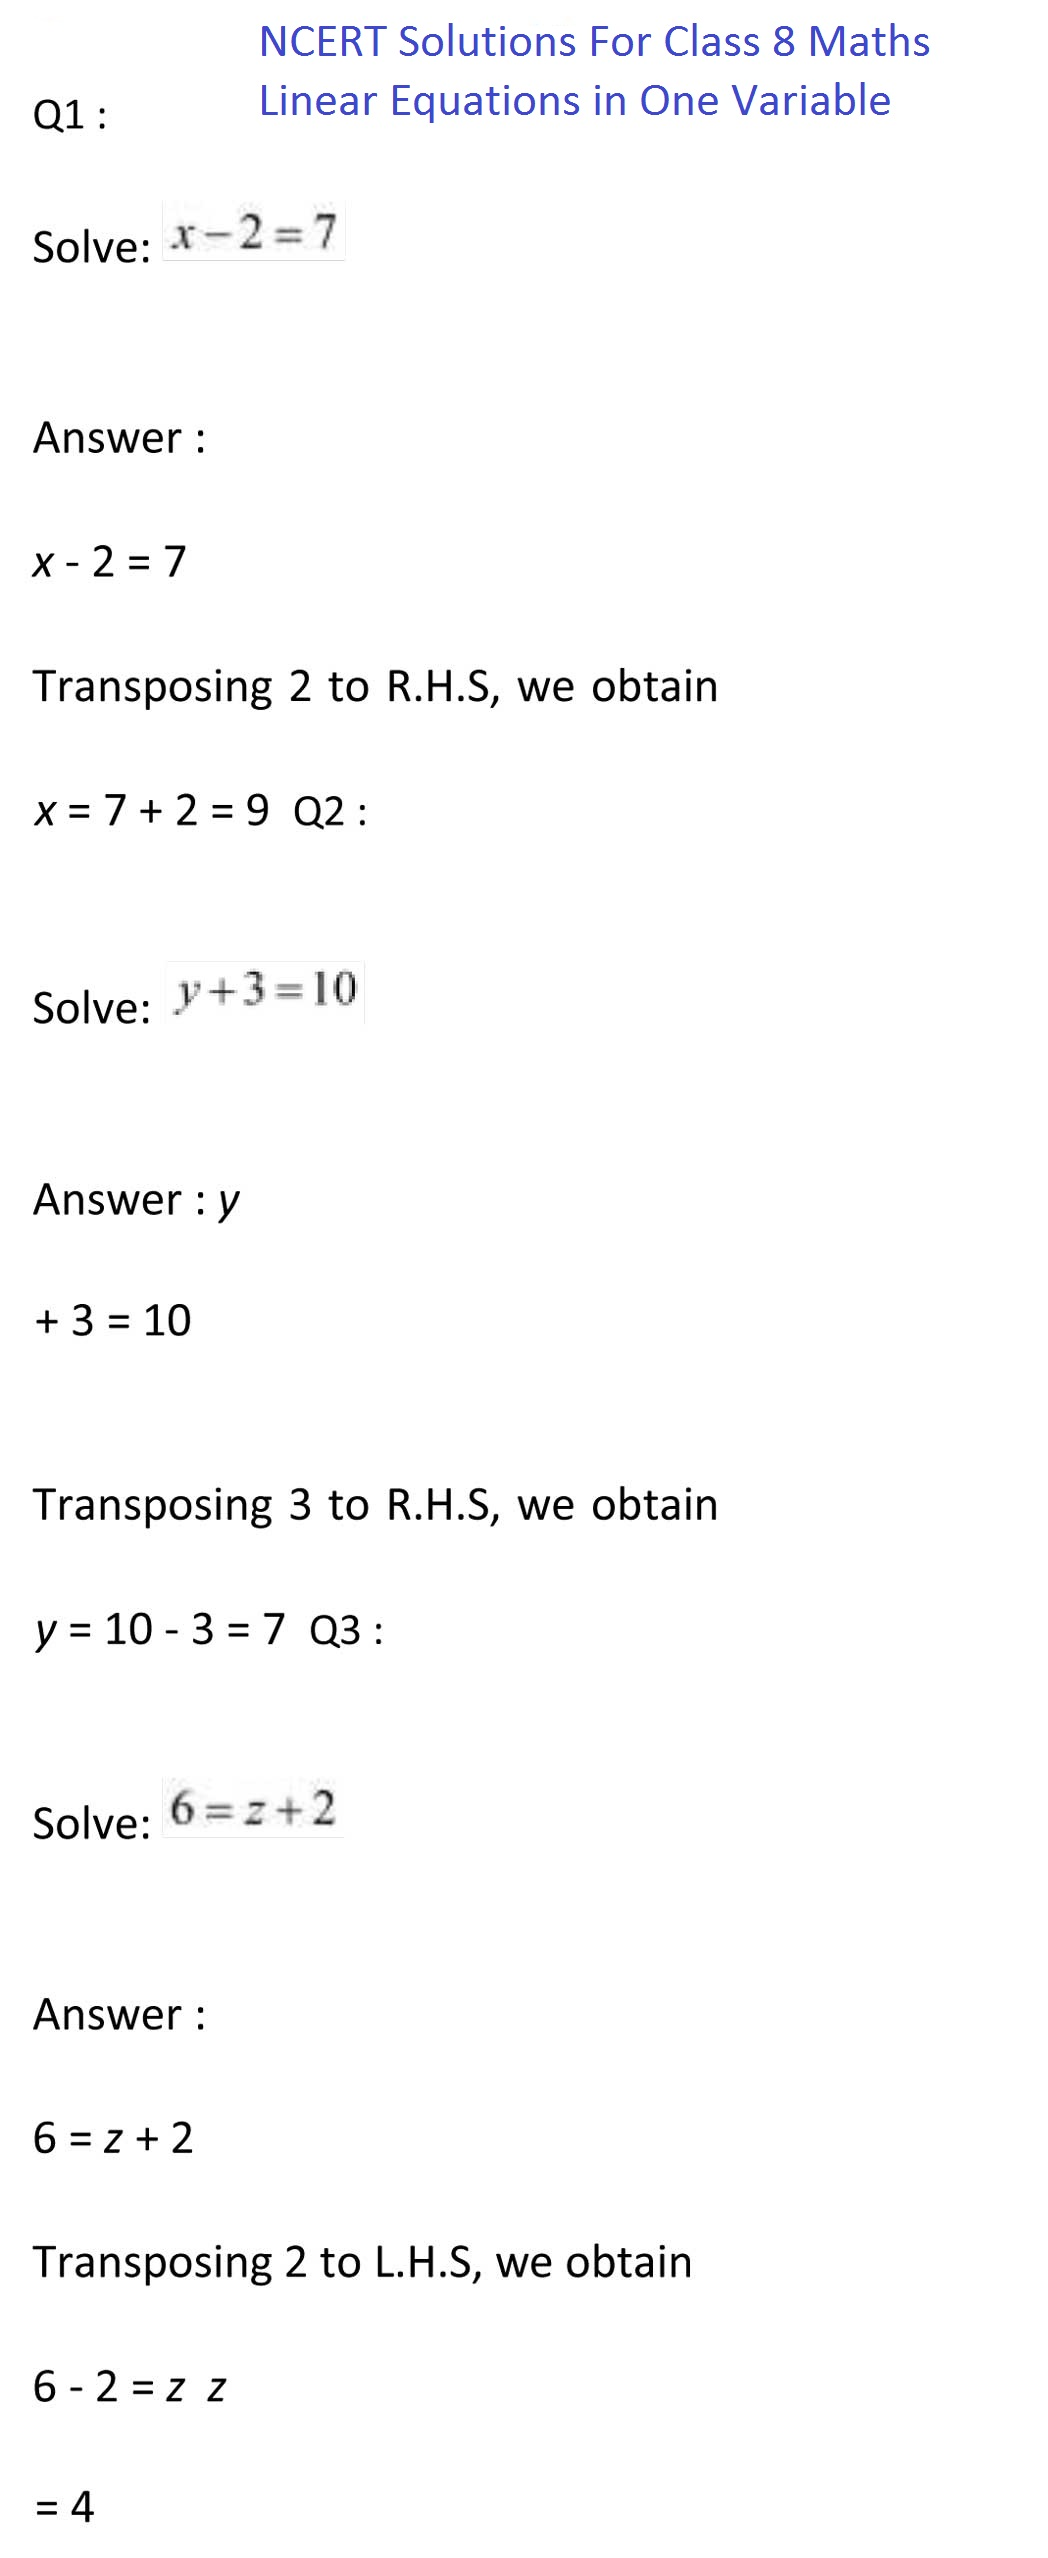 NCERT Solutions For Class 8 Maths Chapter 2 Linear Equation